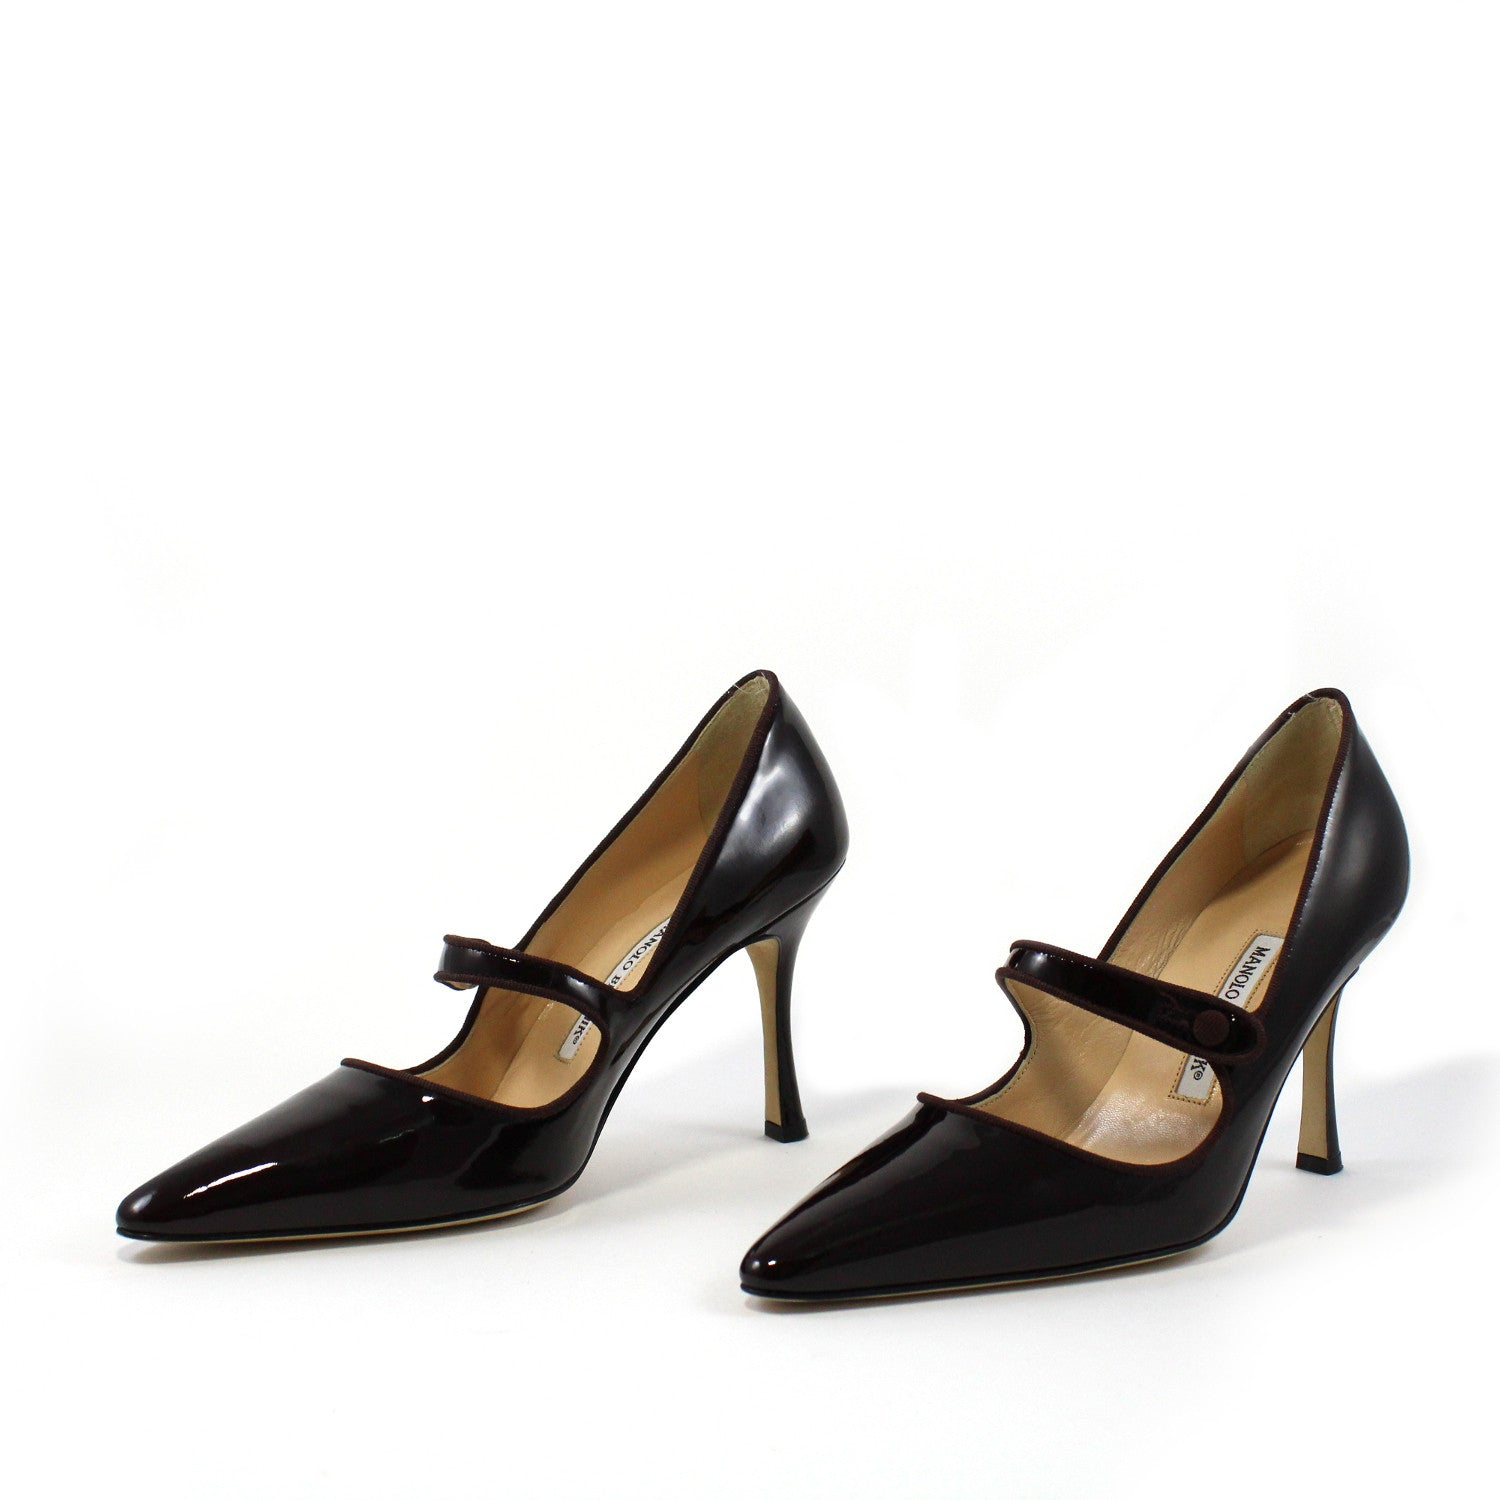 Campari Patent Leather Mary Jane Pumps